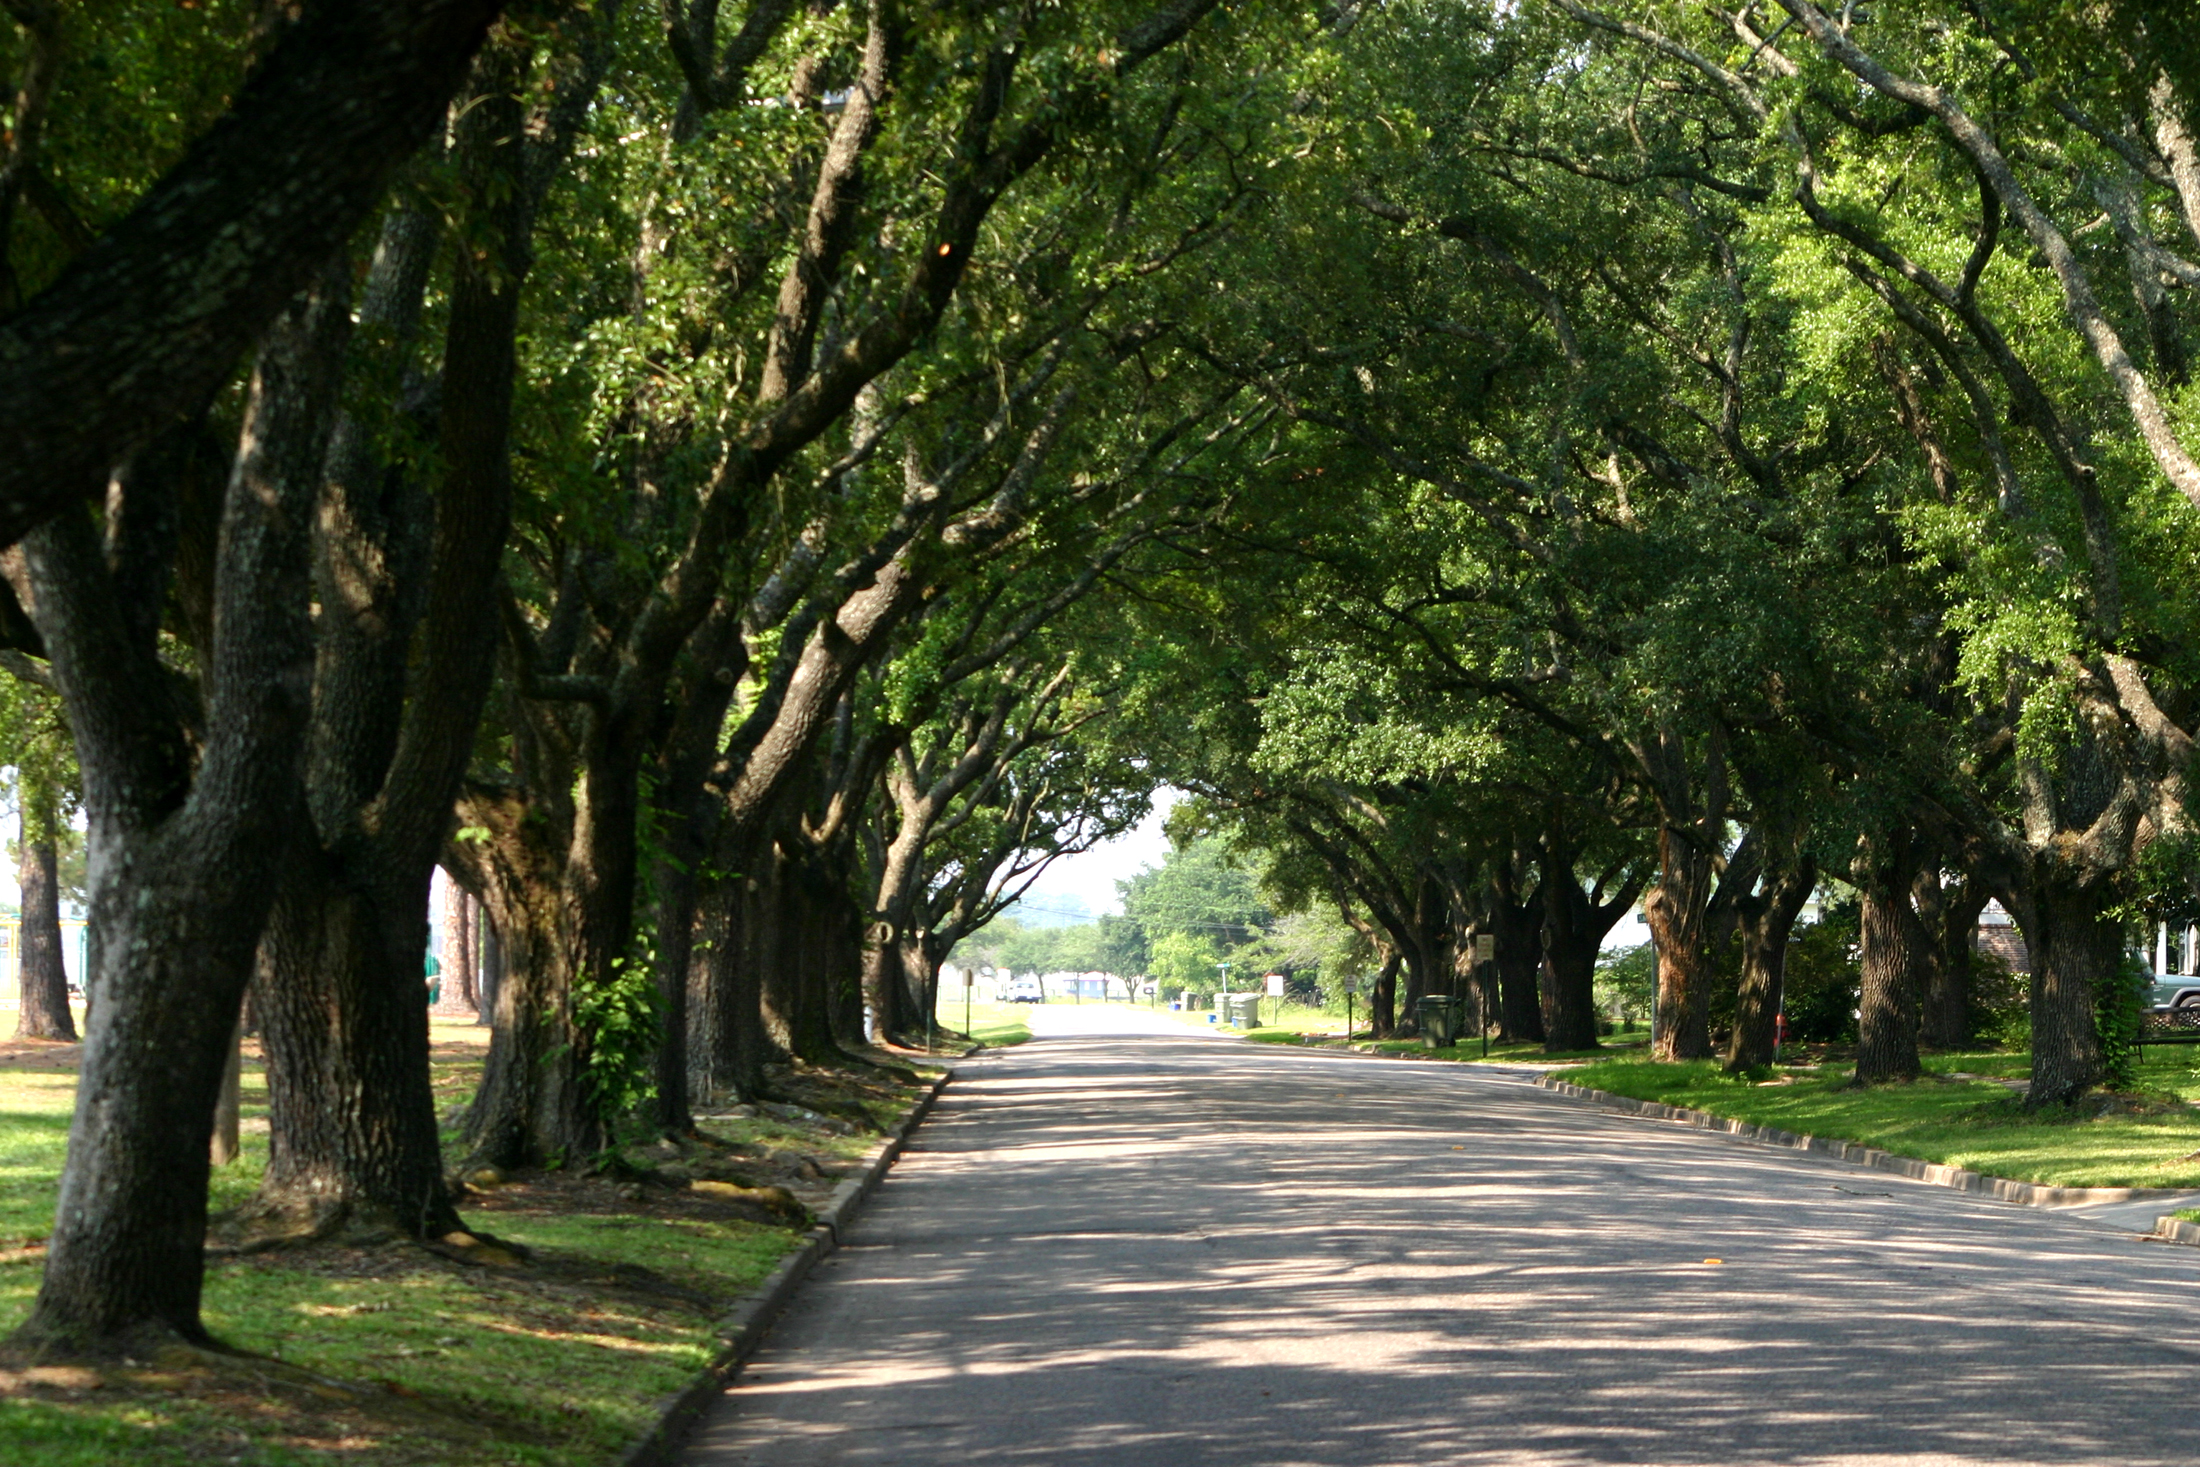 Coastal towns and cities often have hurricane-resistant Live oaks overarching the streets in historic neighborhoods, such as these on East Bay Street, Georgetown.